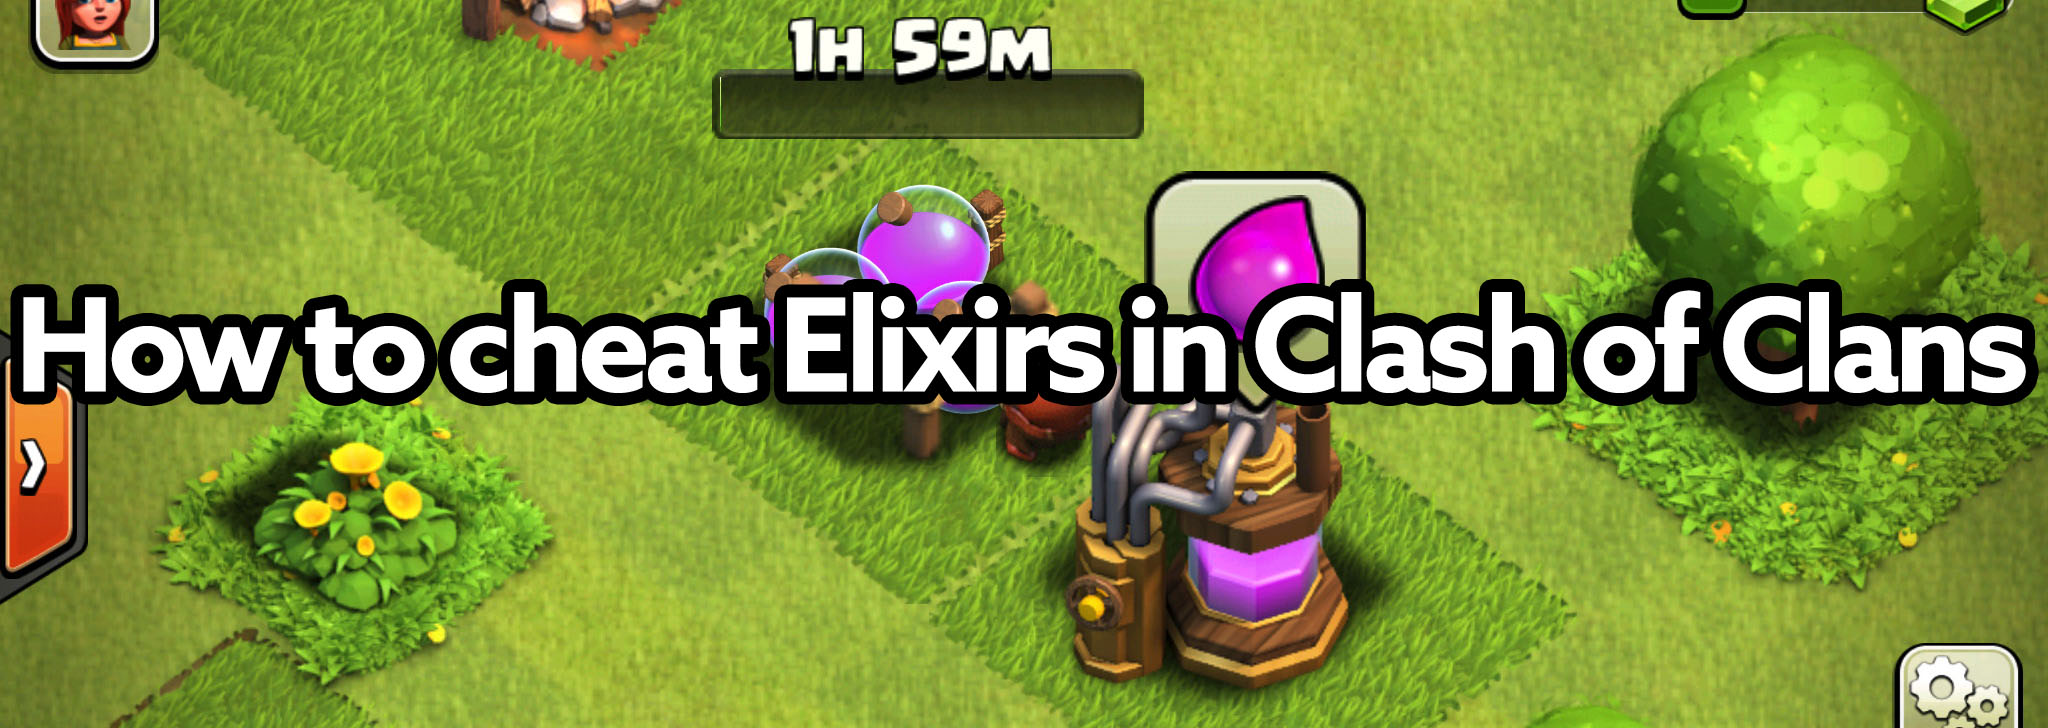 Elixirs Cheat in Clash of Clans